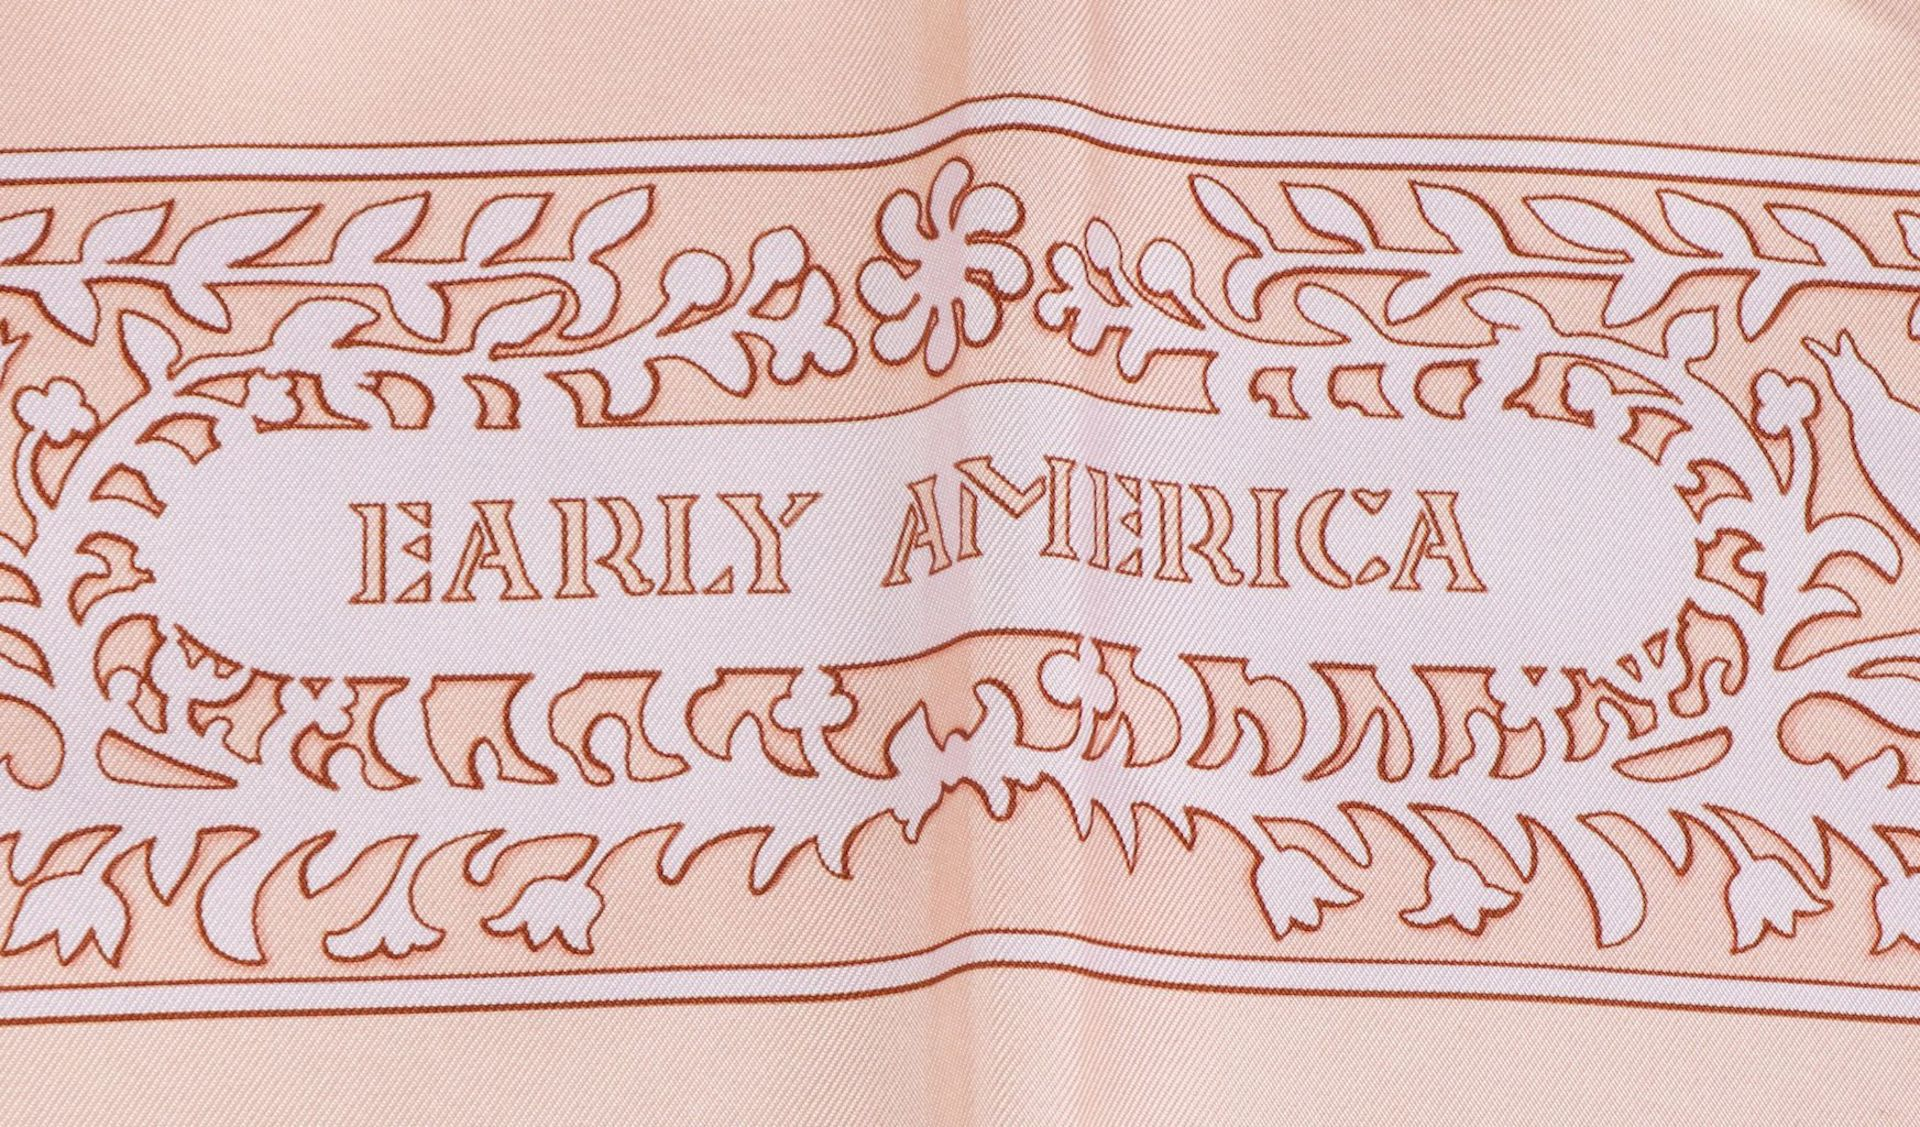 HERMES Seidentuch ¨Early America¨ by F. DE LA PERRIERE - Image 3 of 6